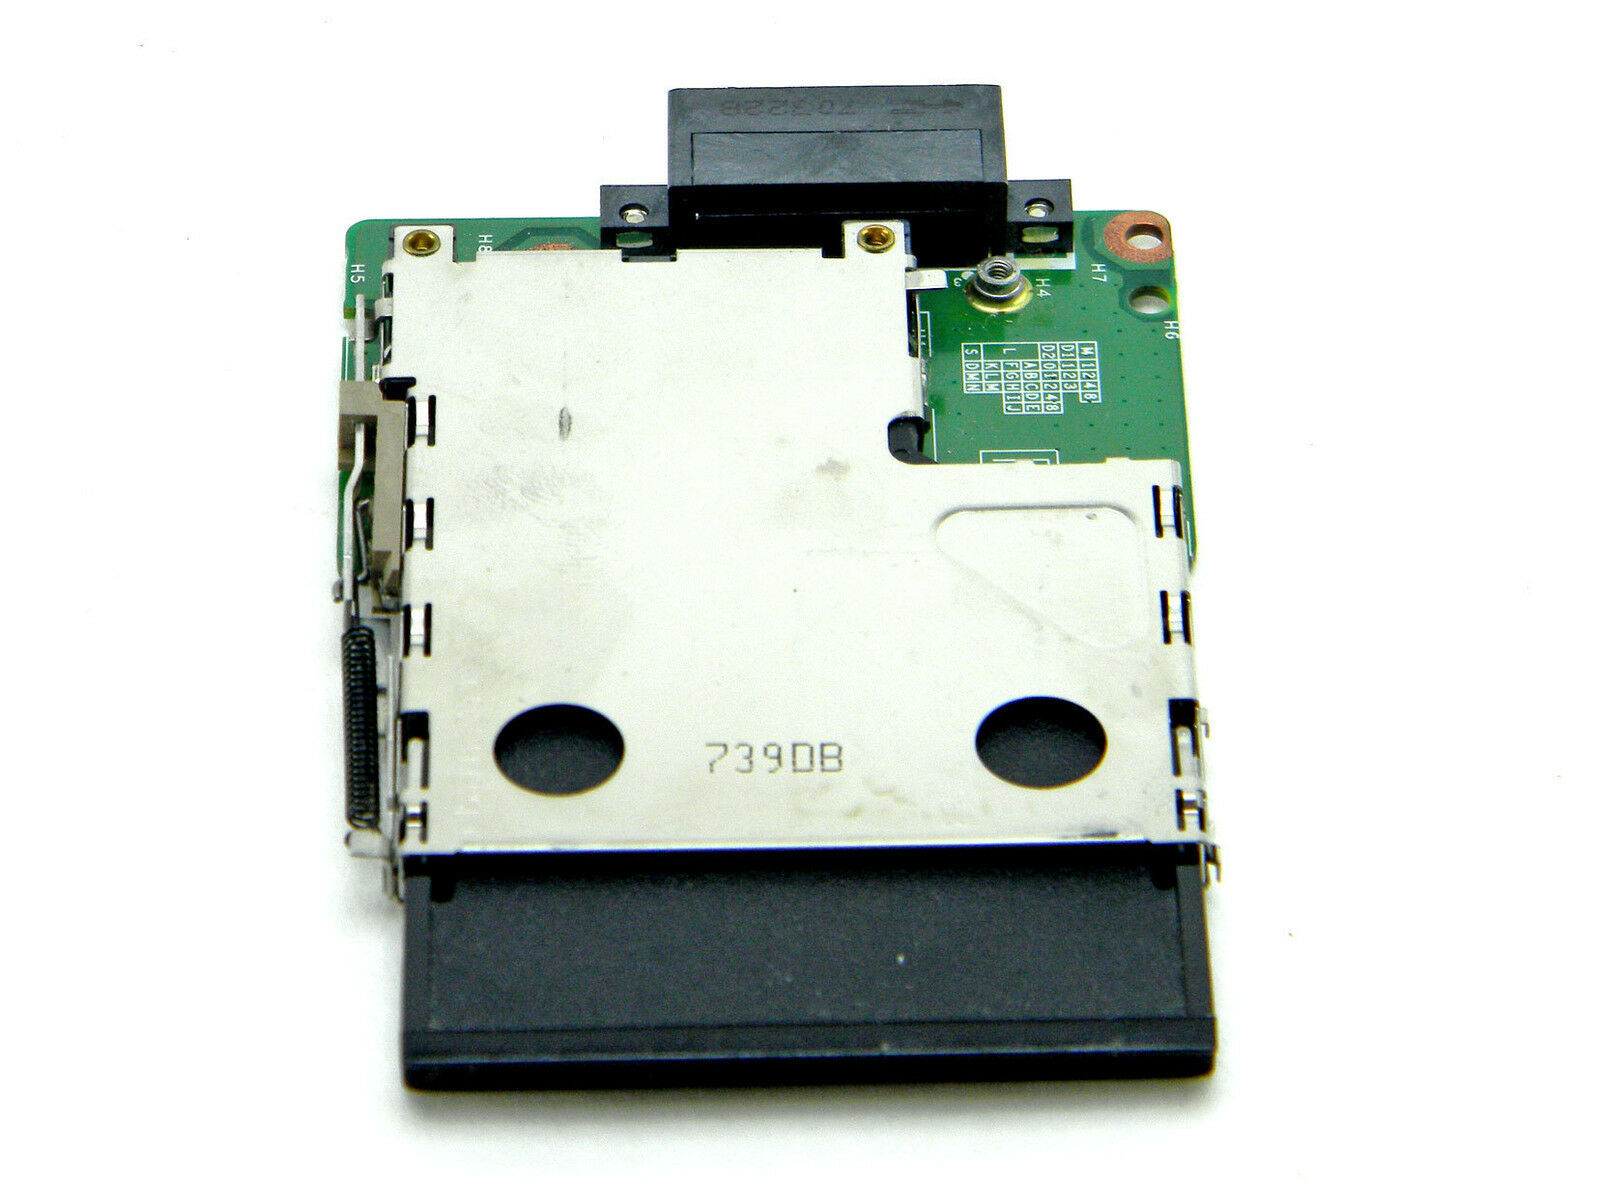 HP PAVILION DV6000 SERIES PCMCIA CARD CAGE BOARD DAAT8TH38F8 35AT8NB0034